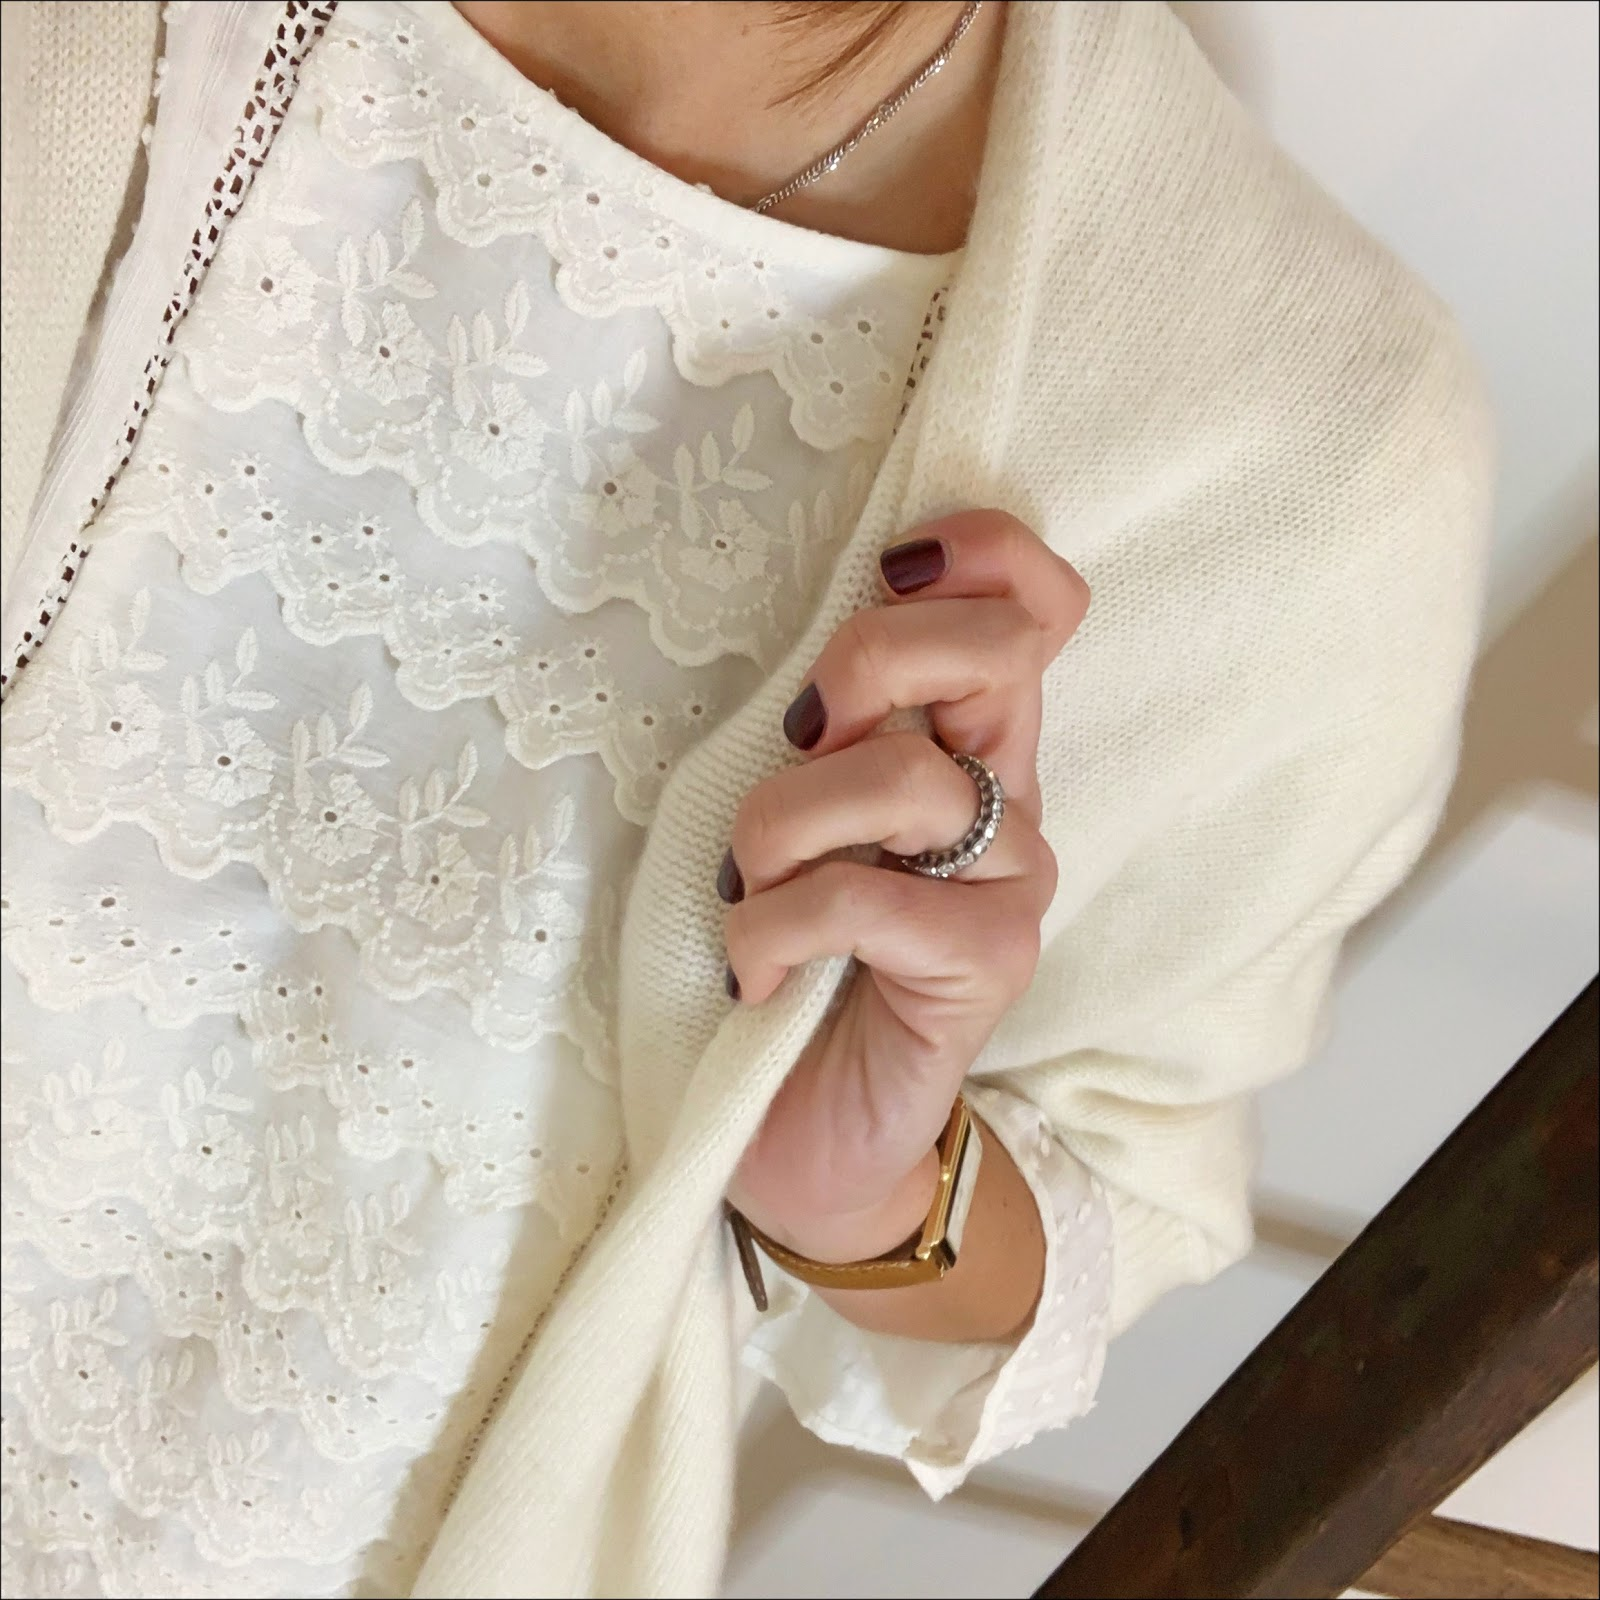 my midlife fashion, italy in cashmere cream white pure cashmere duster cardigan, zara embroidered blouse, j crew toothpick jeans, zara suede western block heel ankle boots